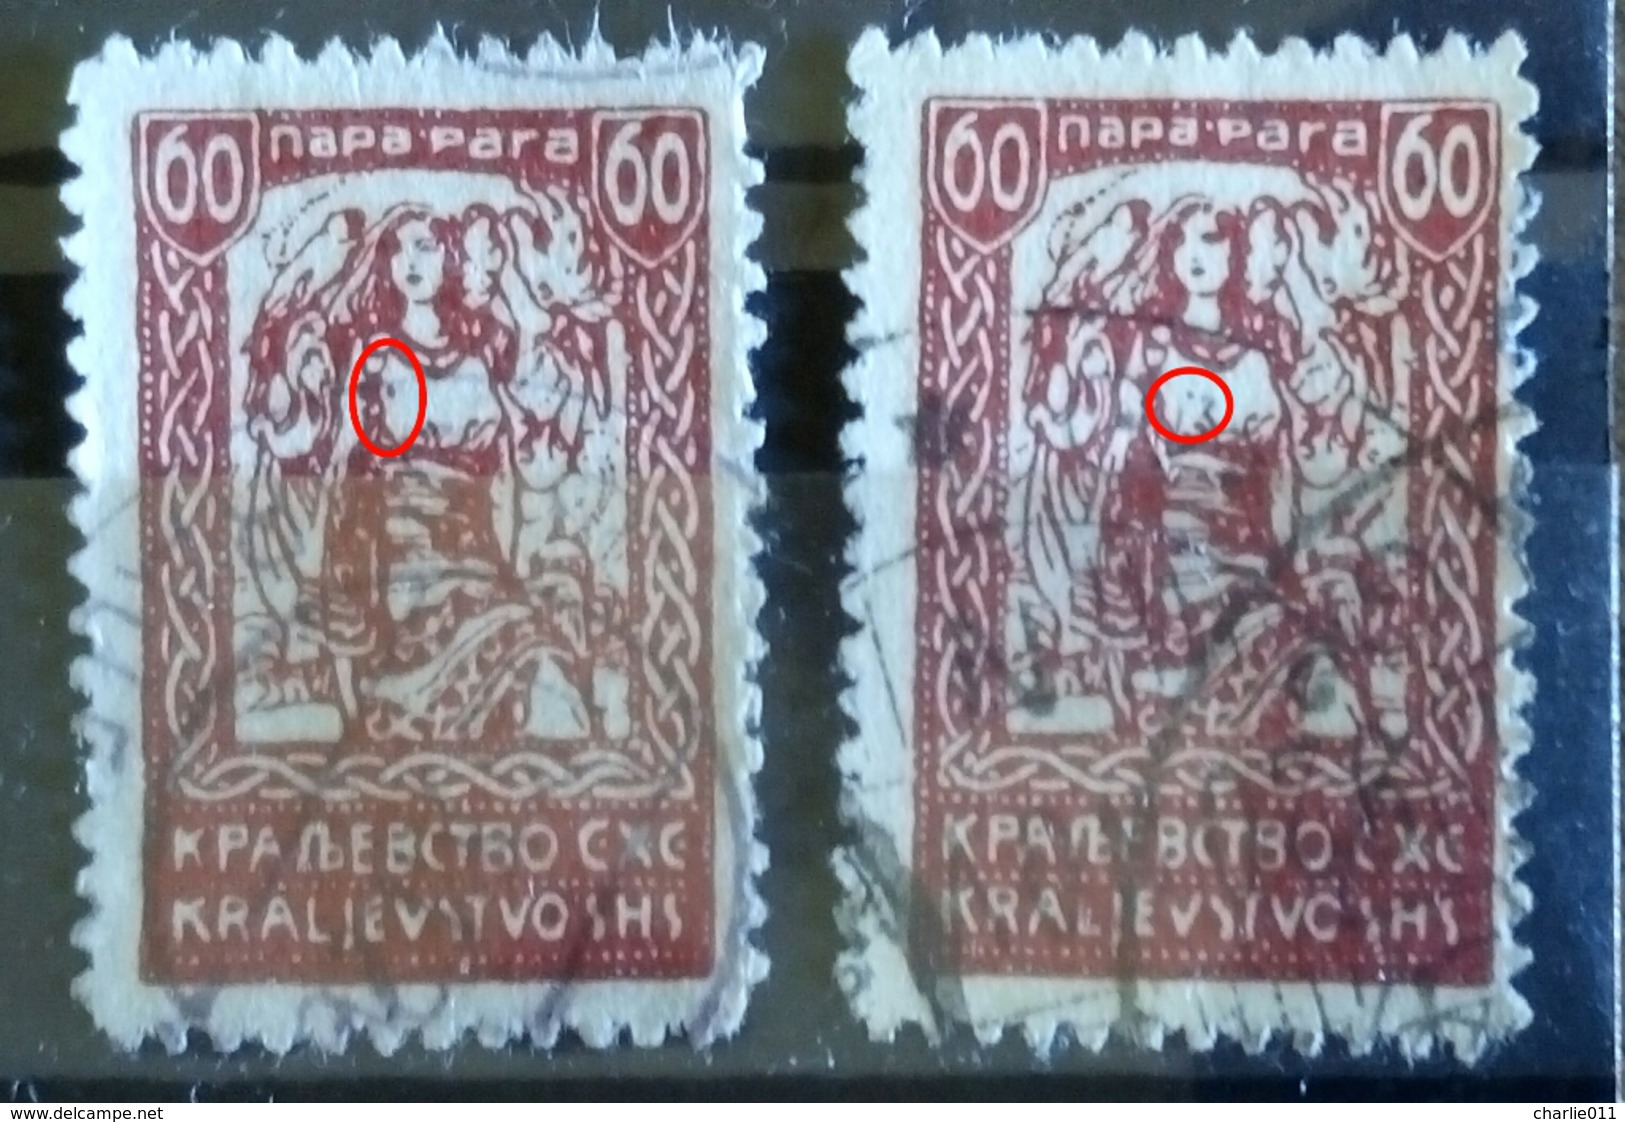 GIRL WITH FALCONS 60 P-ERROR-VARIETY-SHS-SLOVENIA-YUGOSLAVIA-1920 - Used Stamps